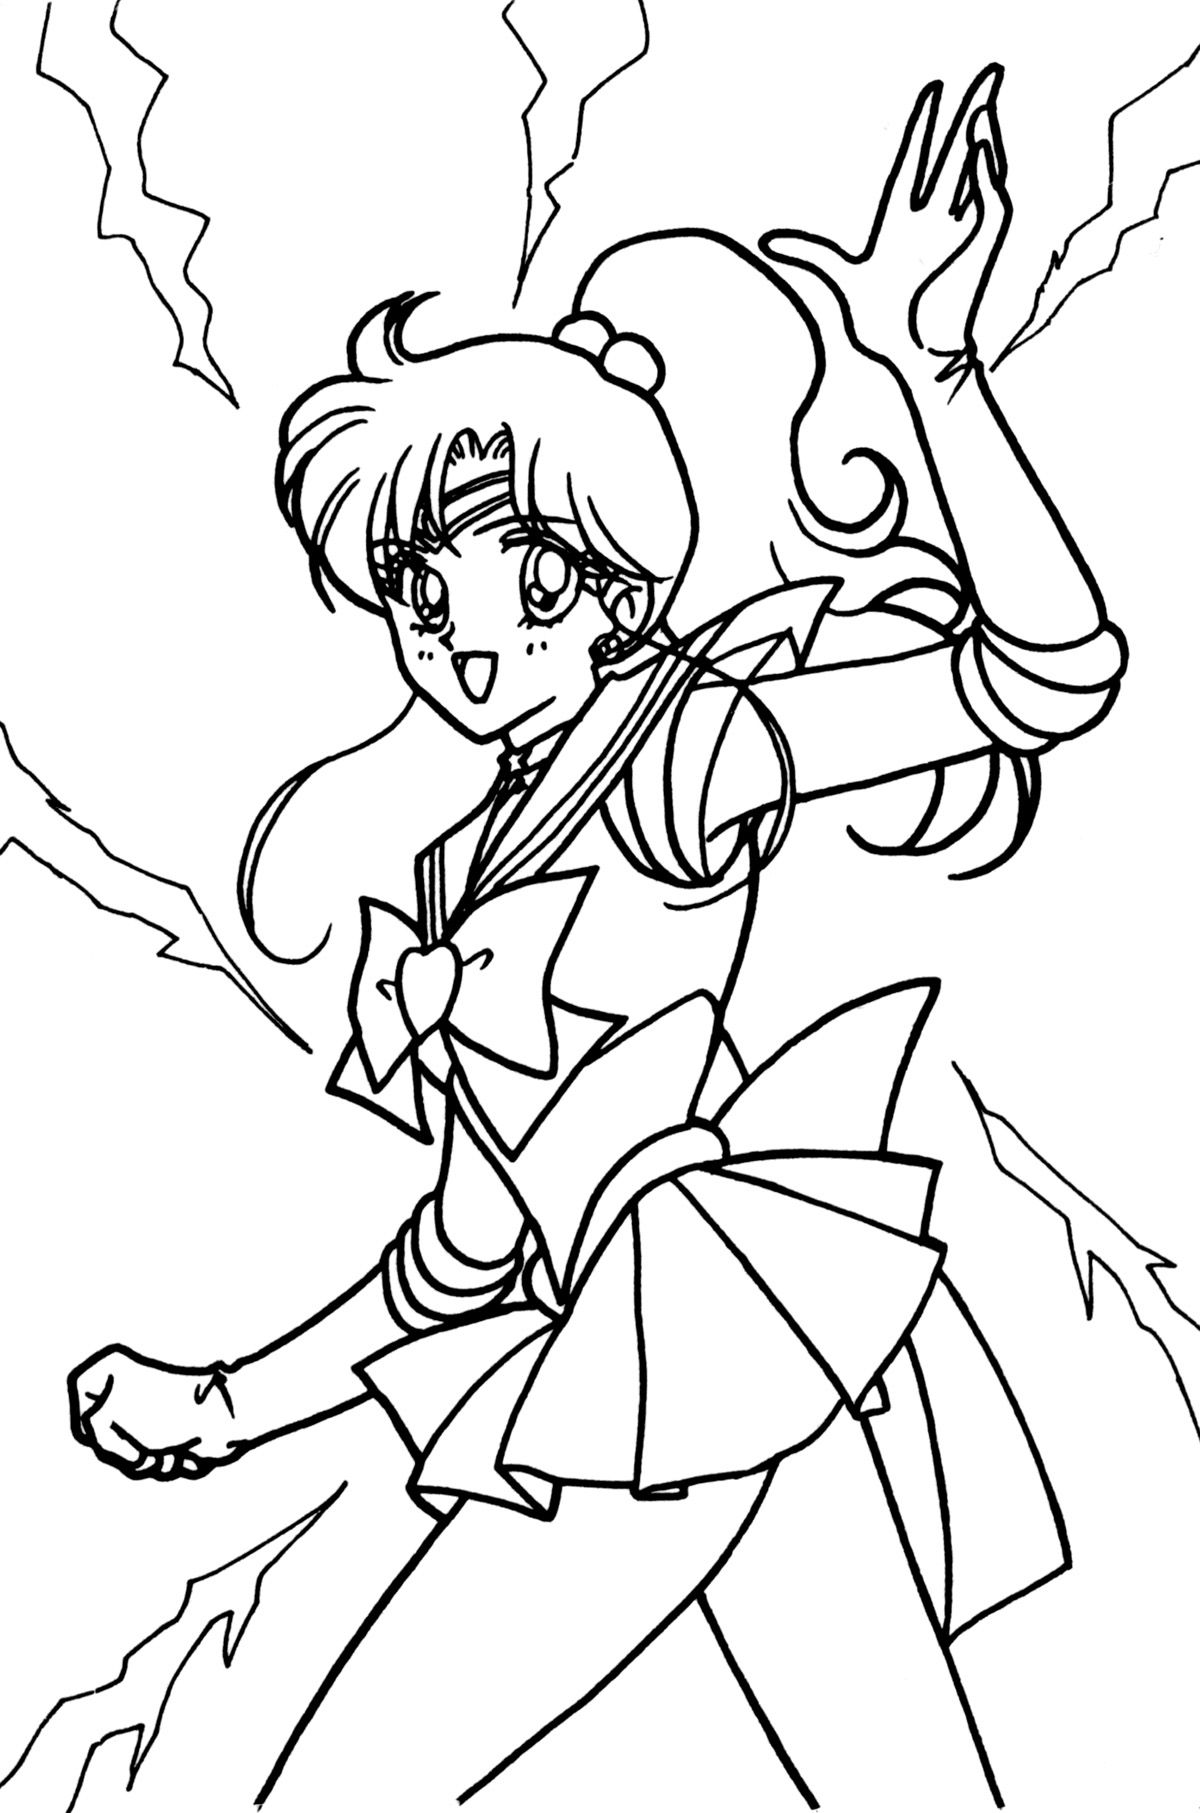 Jupiter027 Jpg 1200 1813 Sailor Moon Coloring Pages